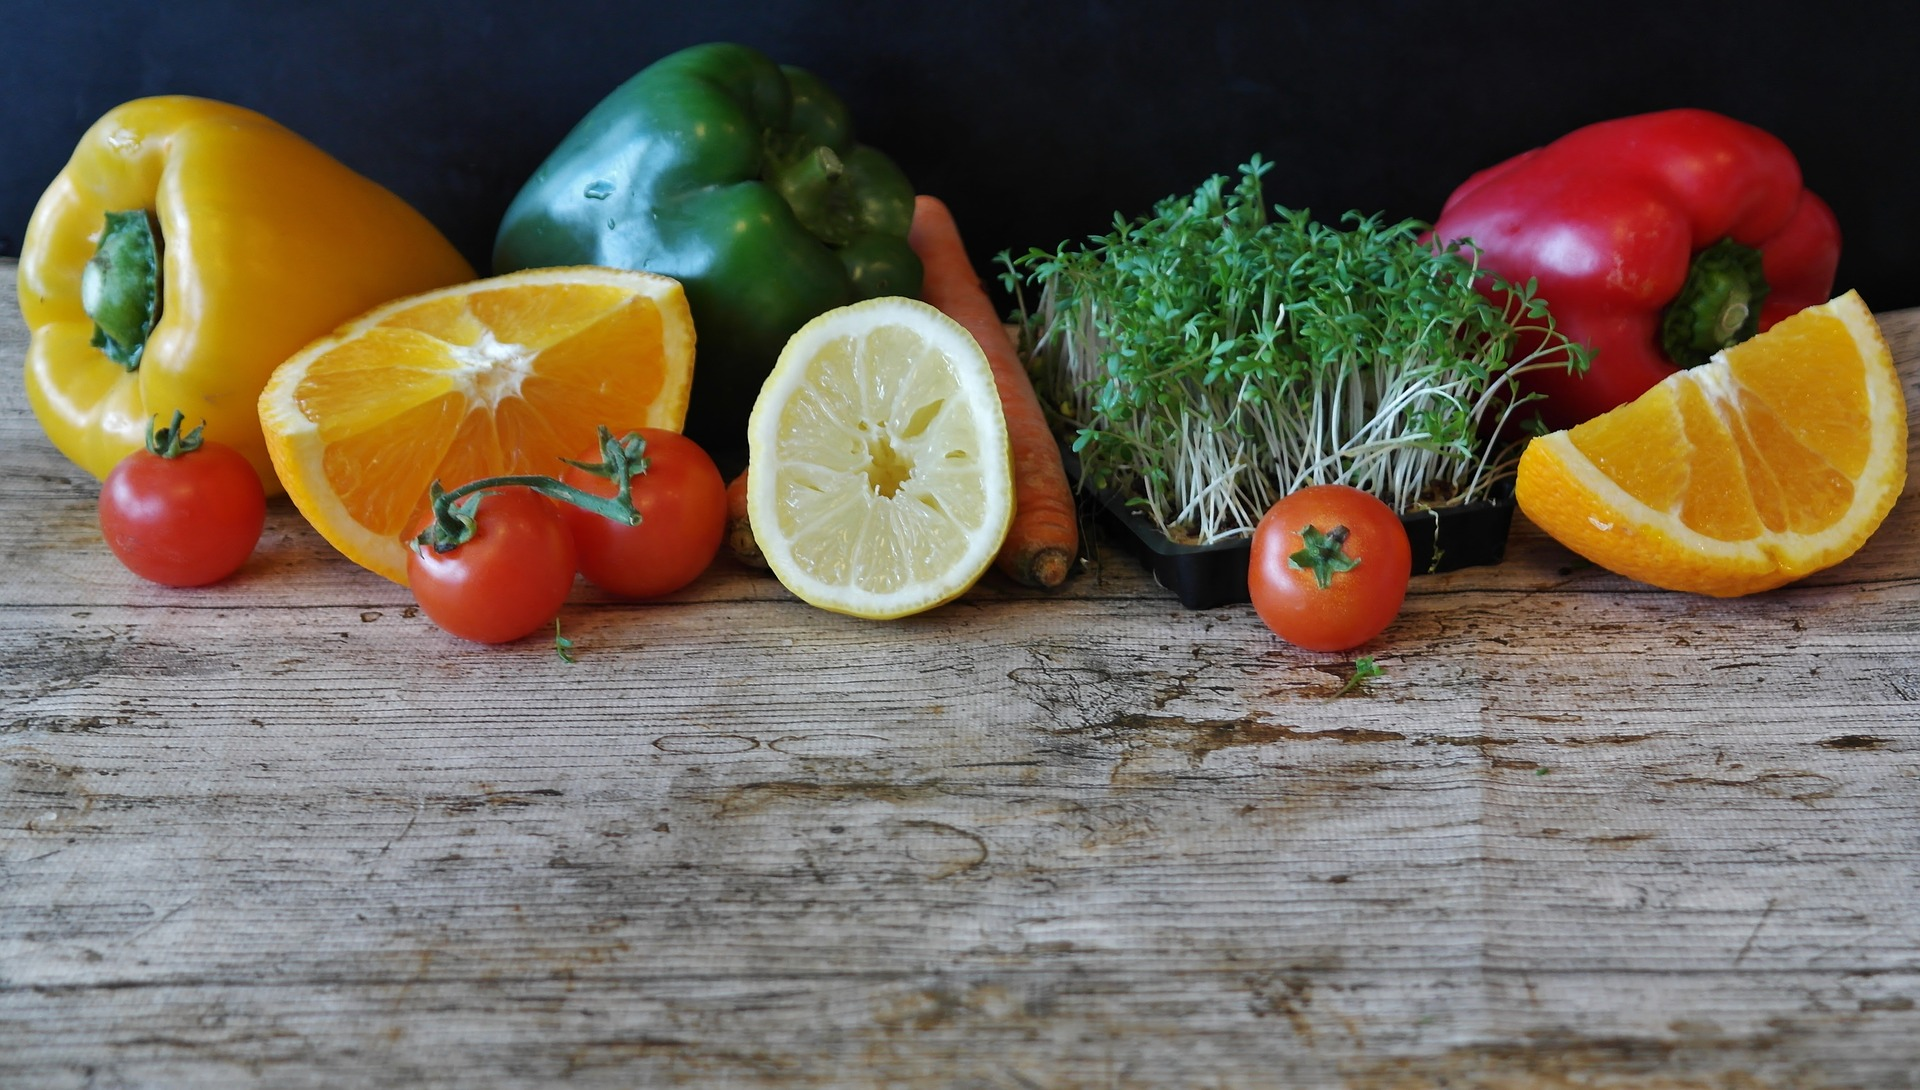 How can I eat more fruit and vegetables for a healthy heart?